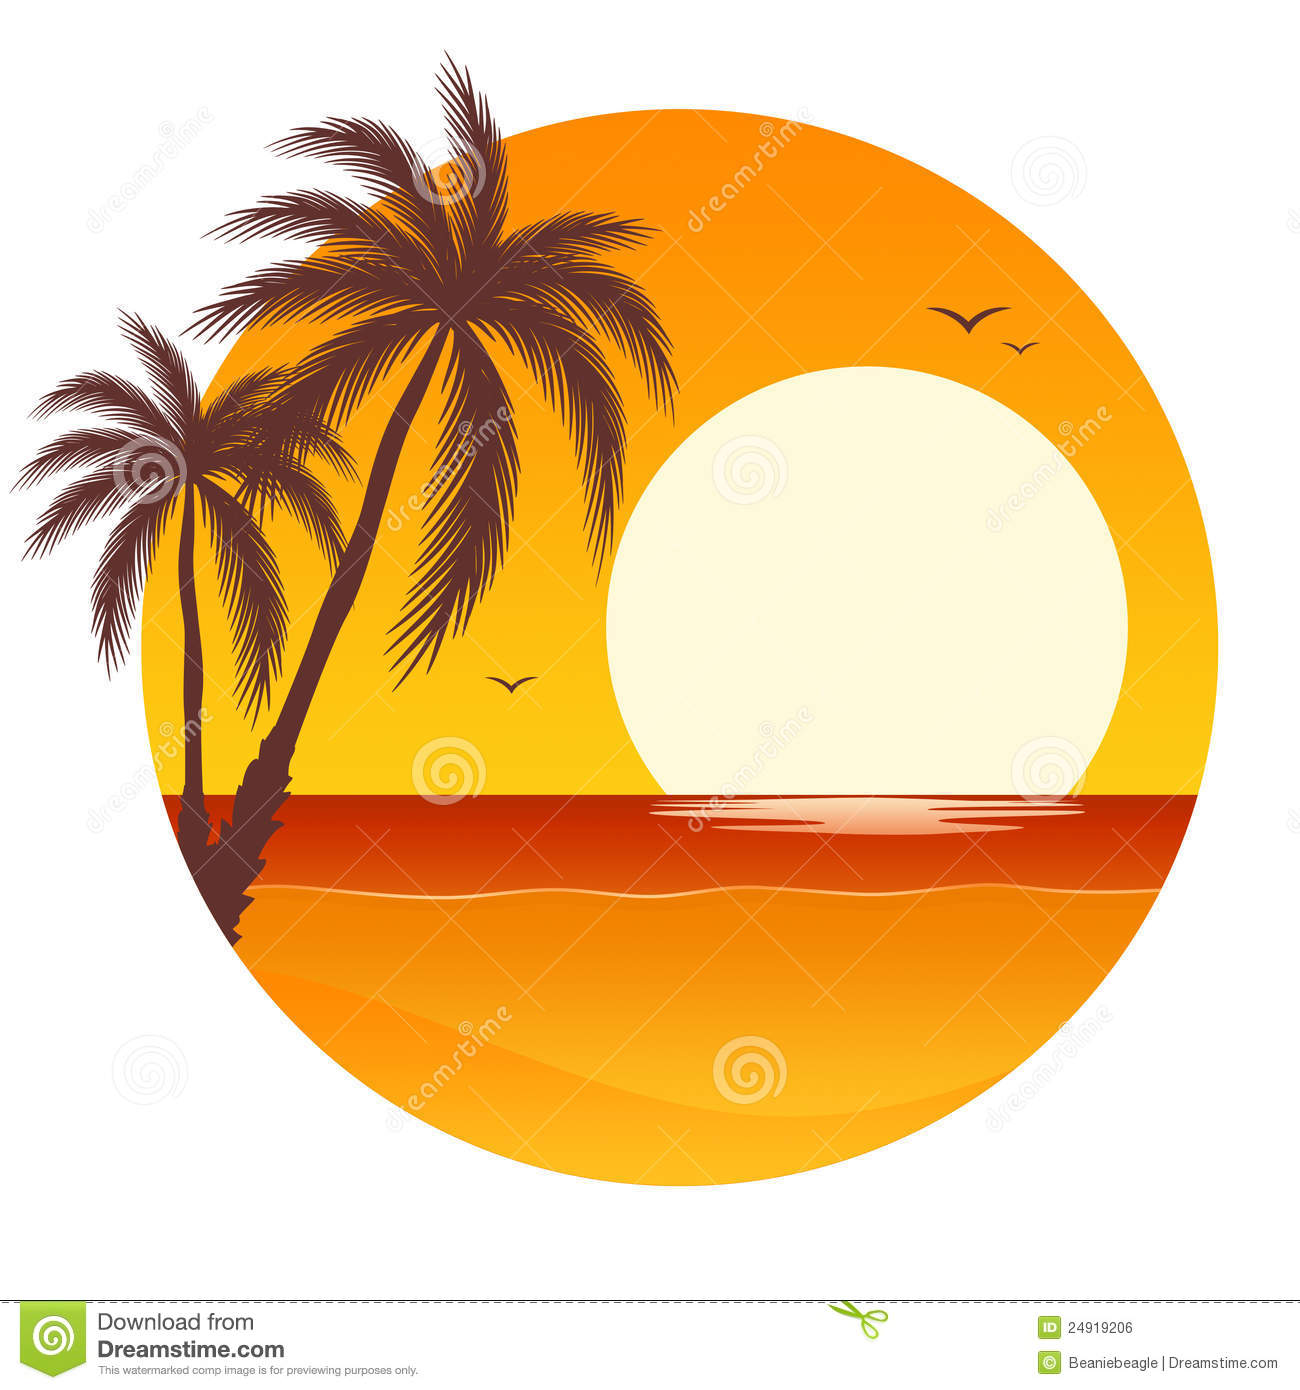 sunset with palm trees clipart panda free clipart images rh clipartpanda com sunset clip art black and white sunset clipart image